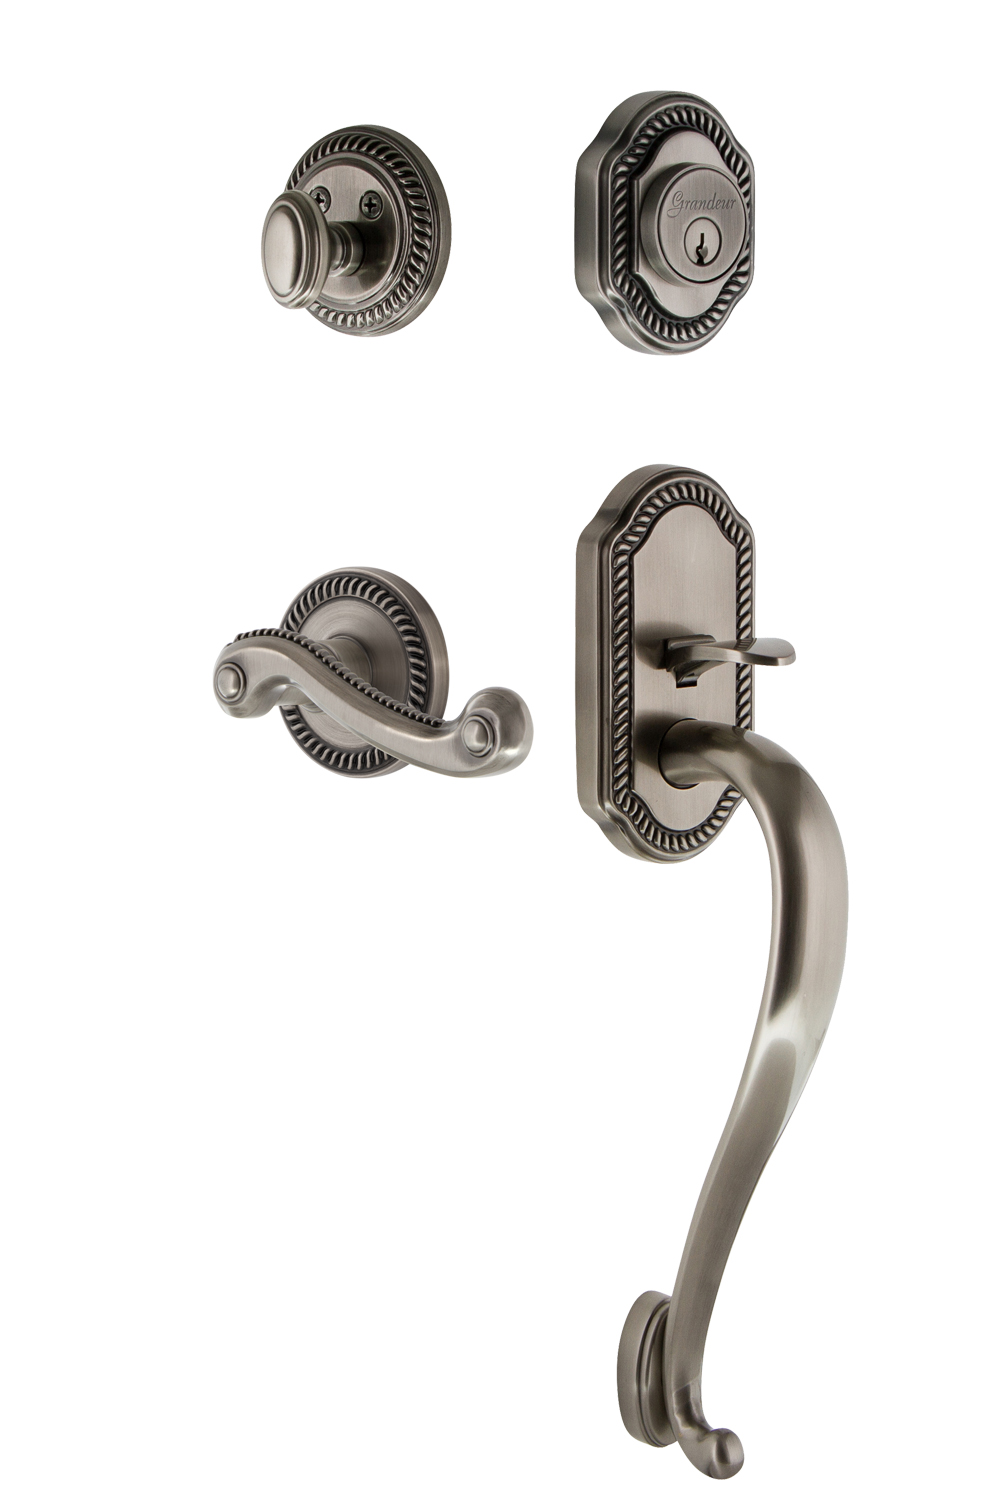 Grandeur Newport Handleset with S Grip and Newport Interior Plates